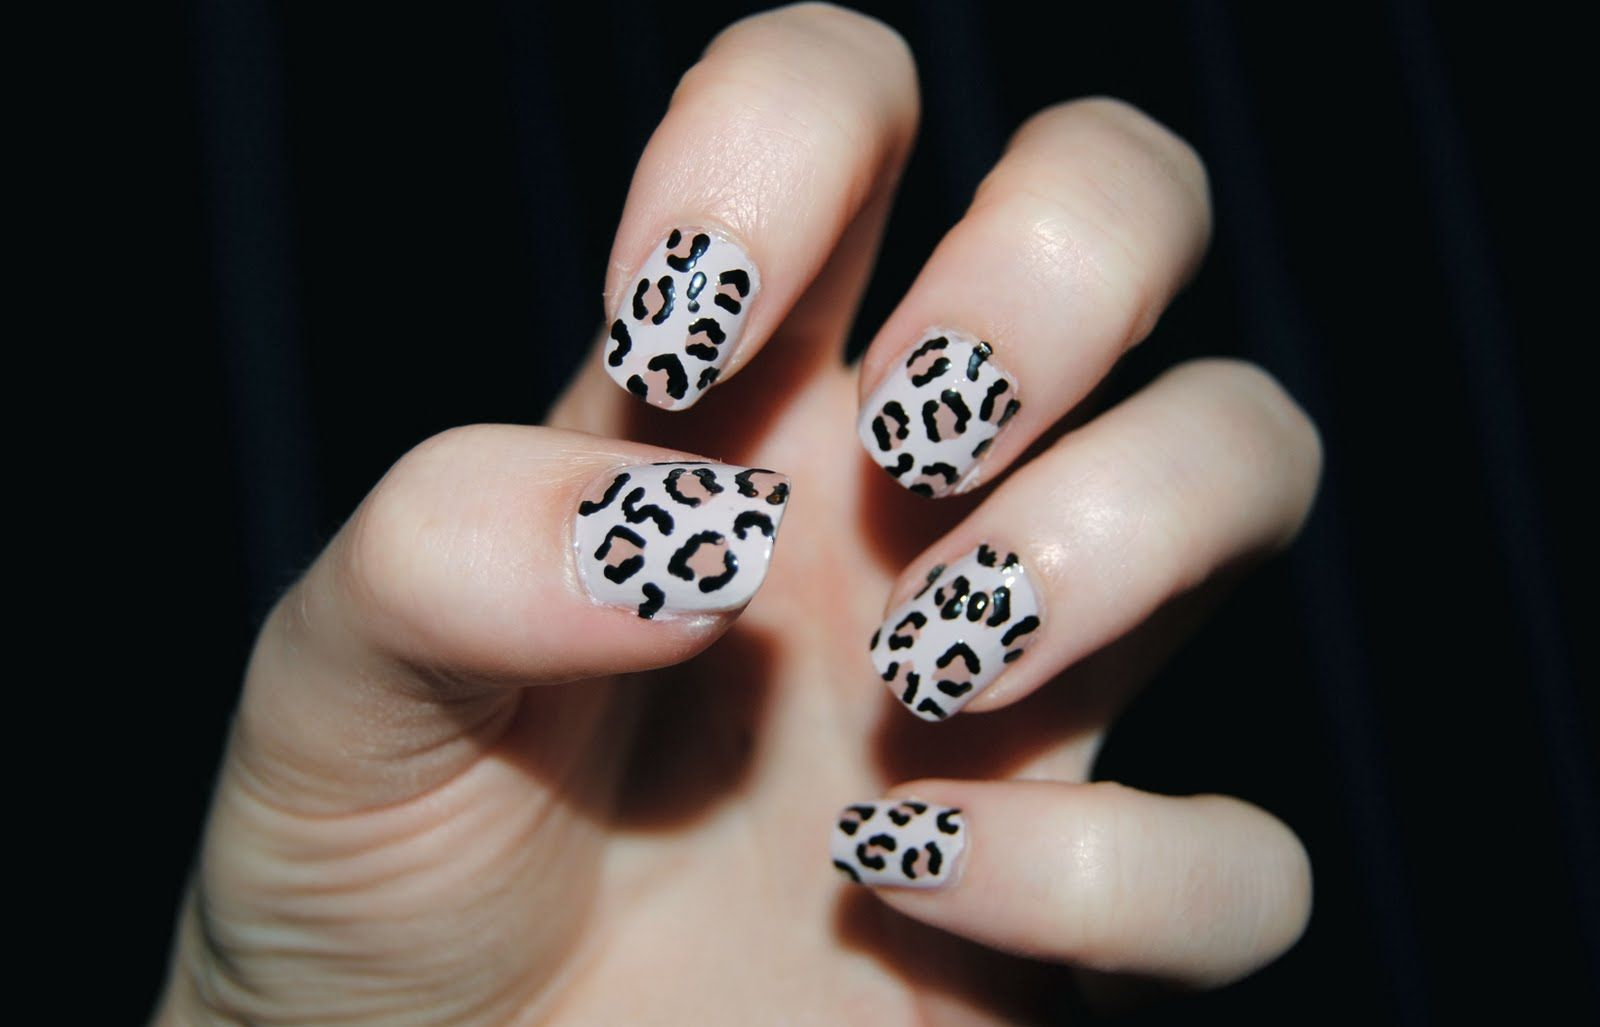 Dorable How To Paint Cheetah Print On Nails Ideas - Nail Art Design ...